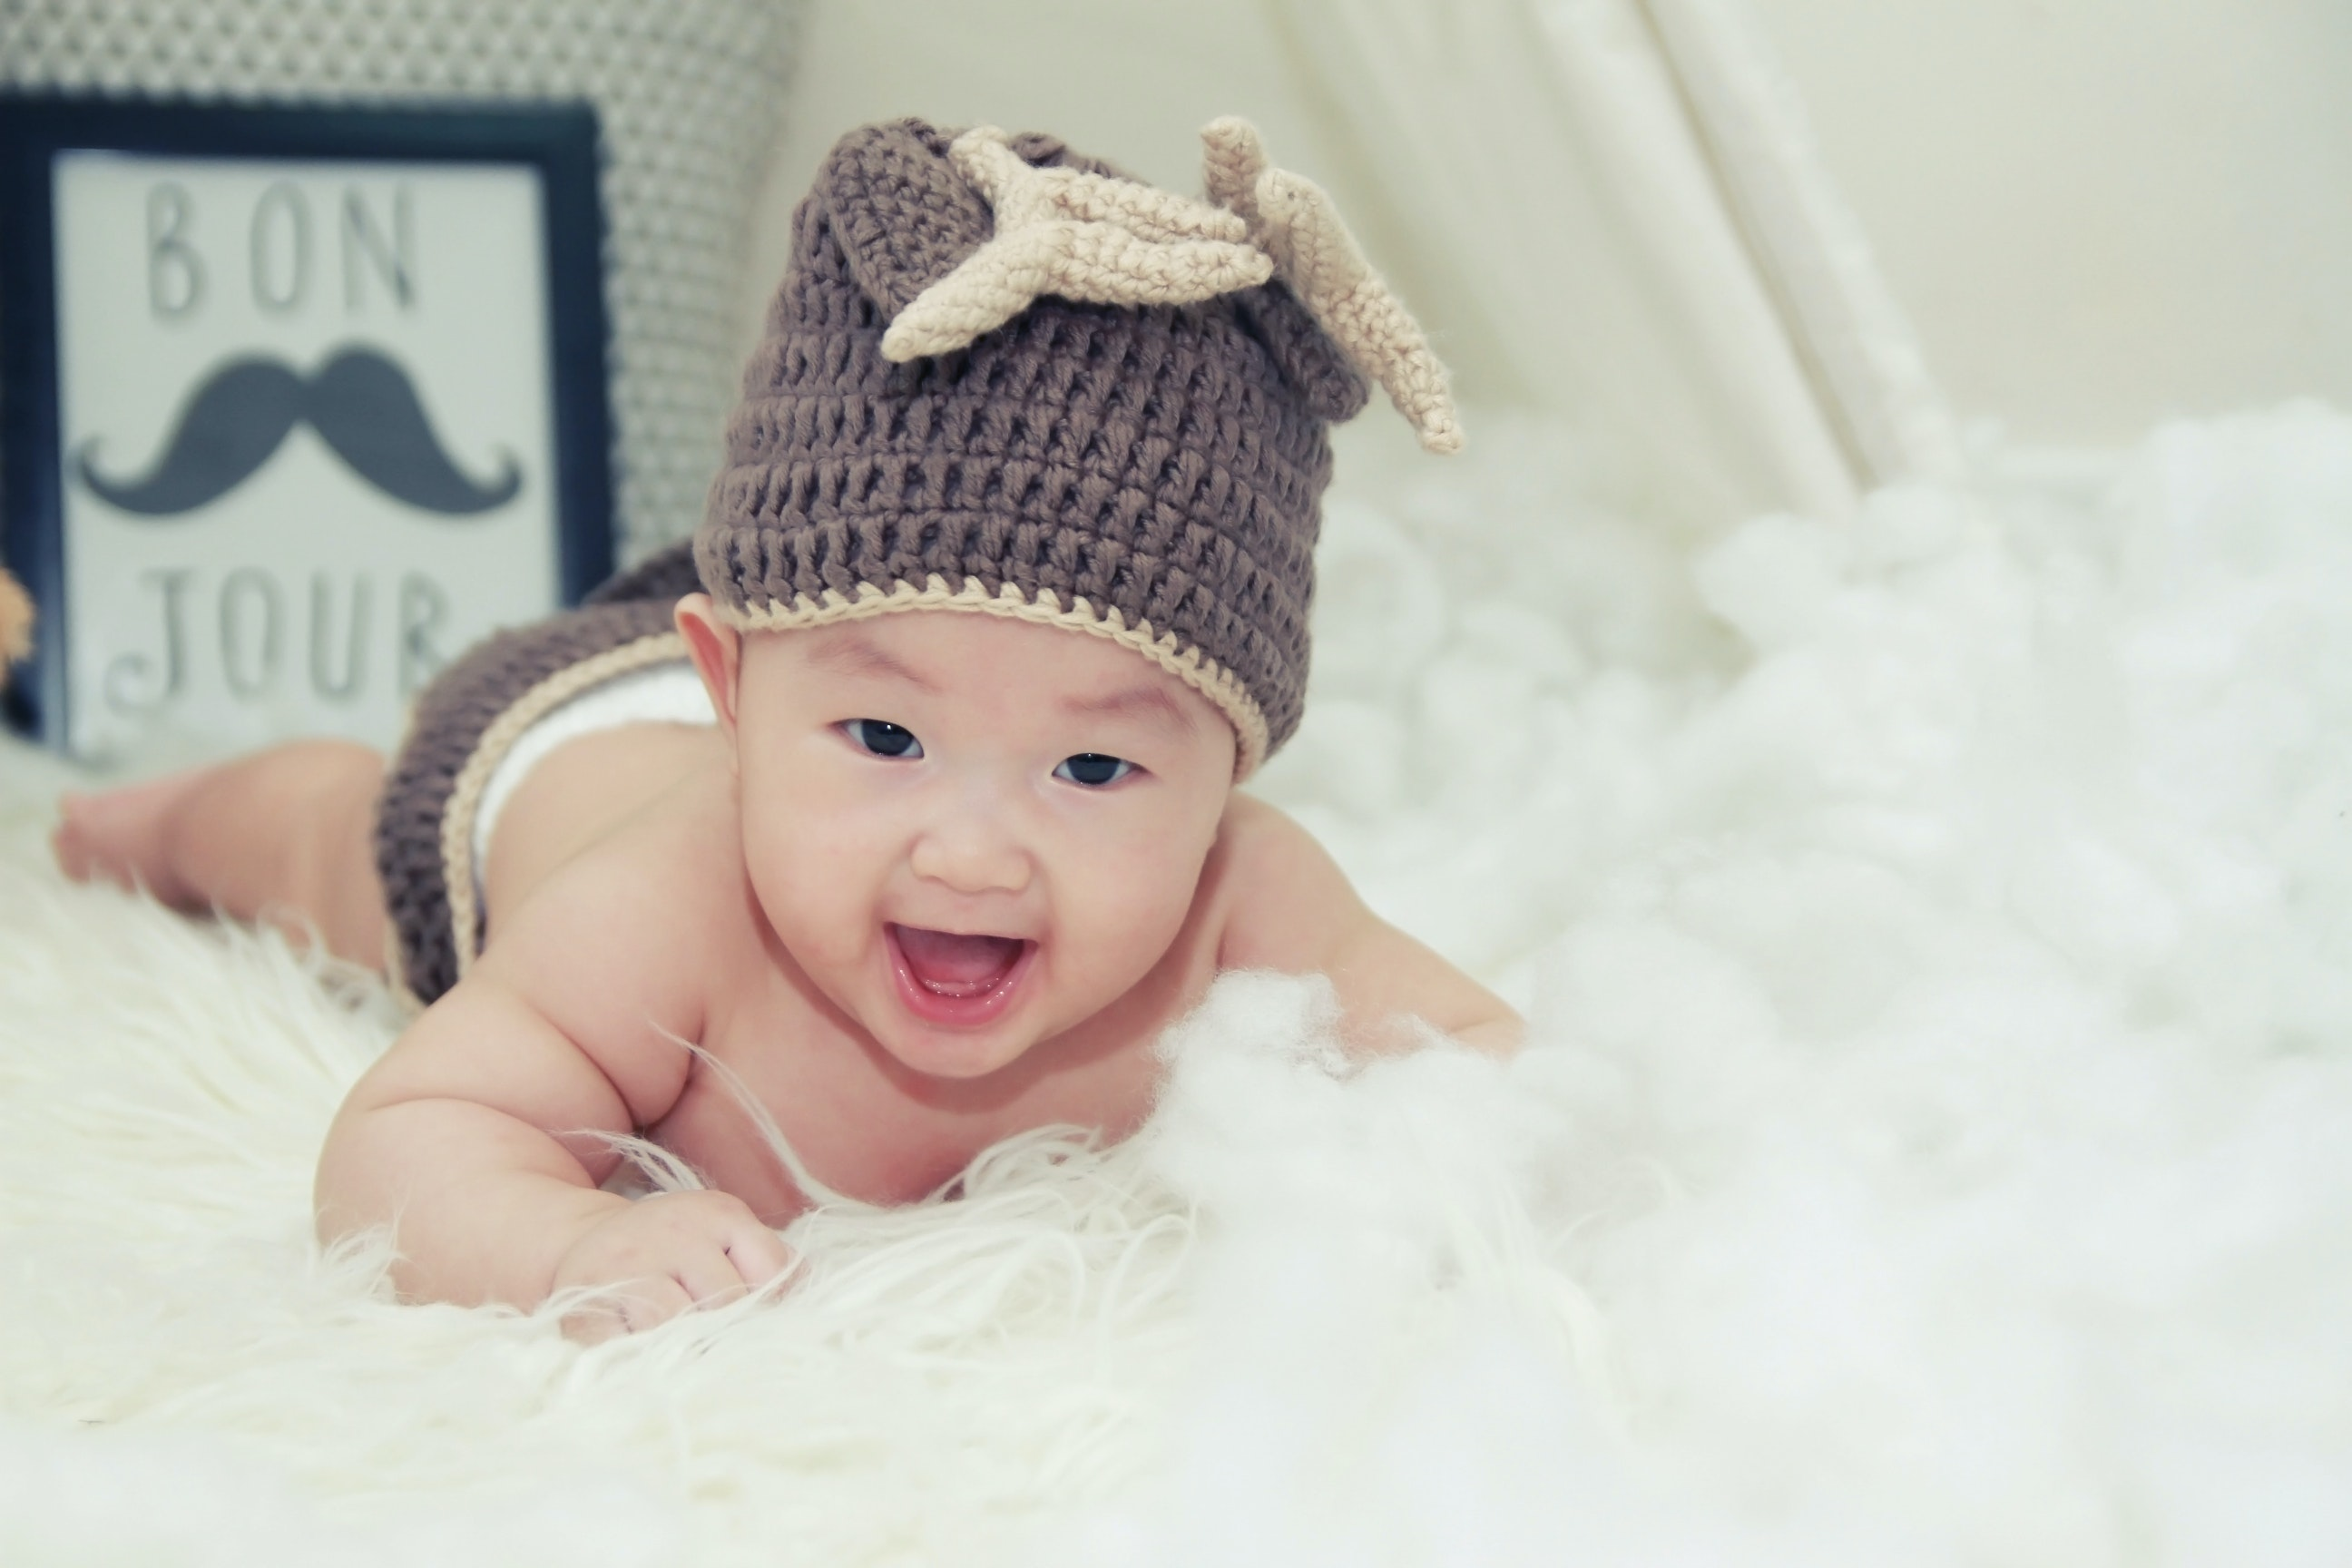 New baby boy picture download